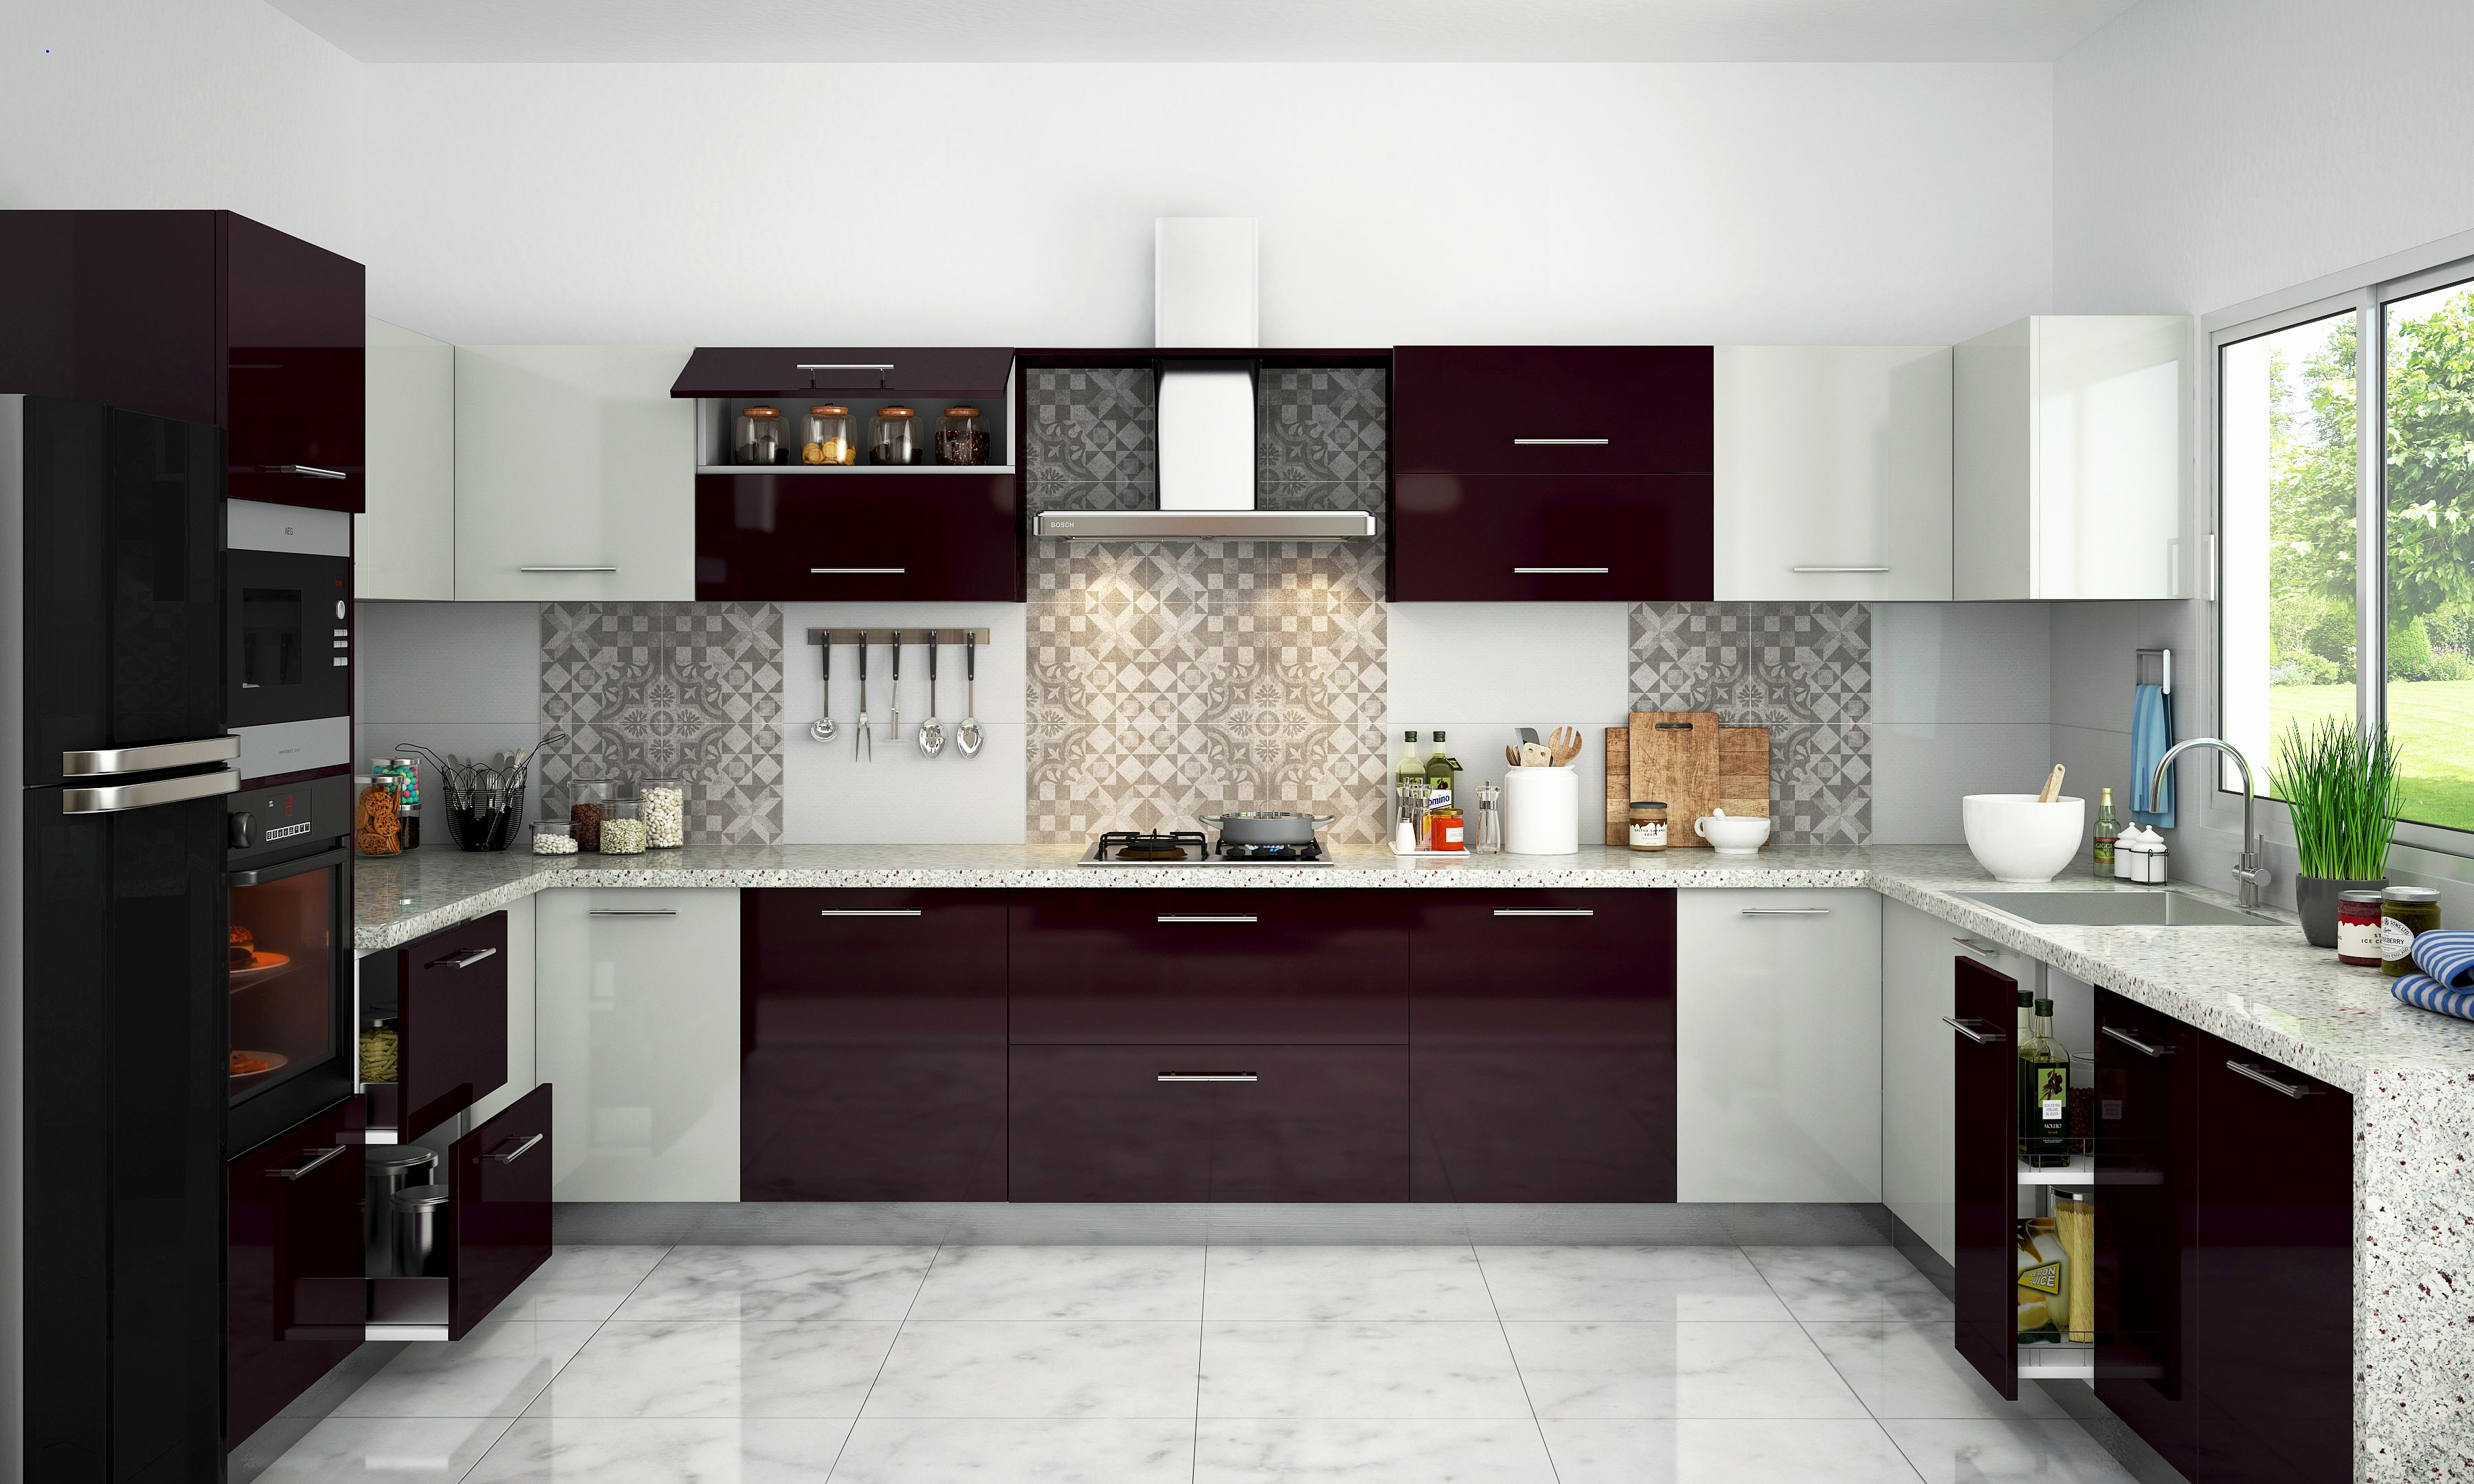 Two Toned Cabinets Kitchen Cabinet Design Kitchen Cabinets Decor Kitchen Cabinet Trends